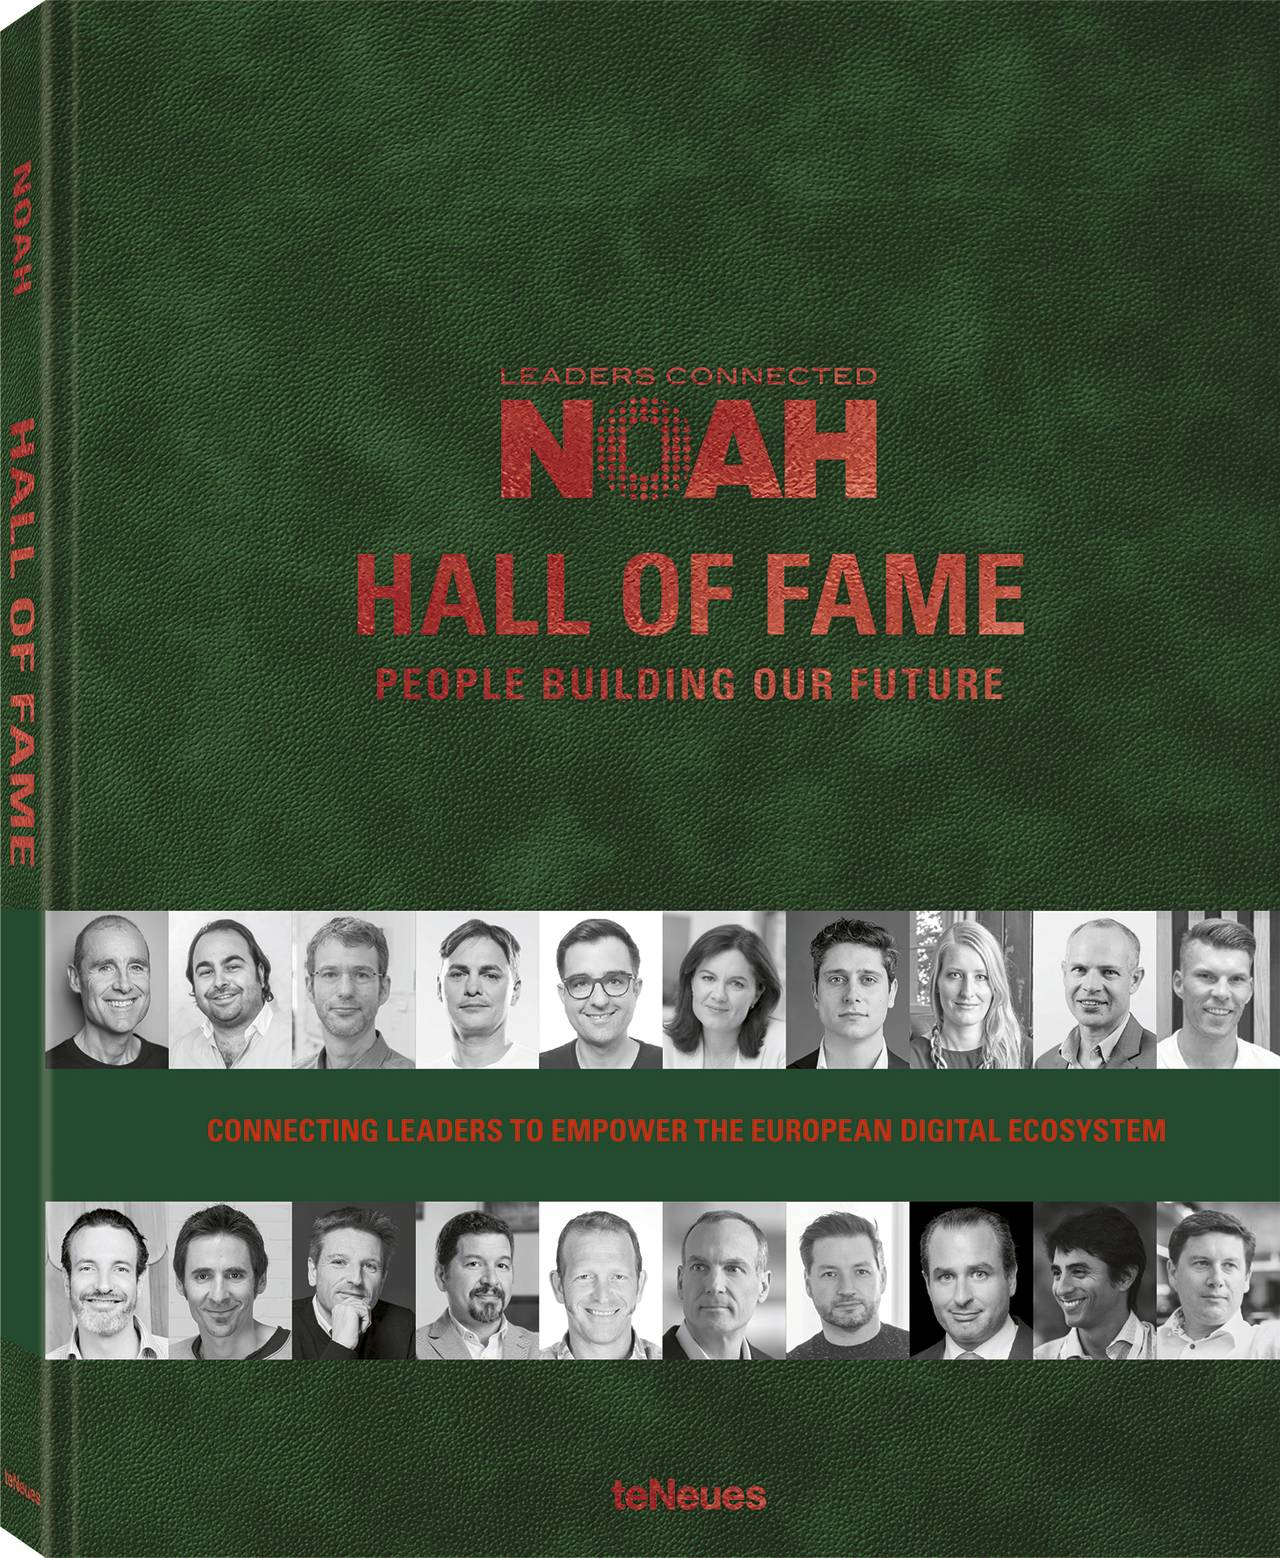 © NOAH - Hall of Fame - People Building our Future, published by teNeues, www.teneues.com, www.noah-conference.com